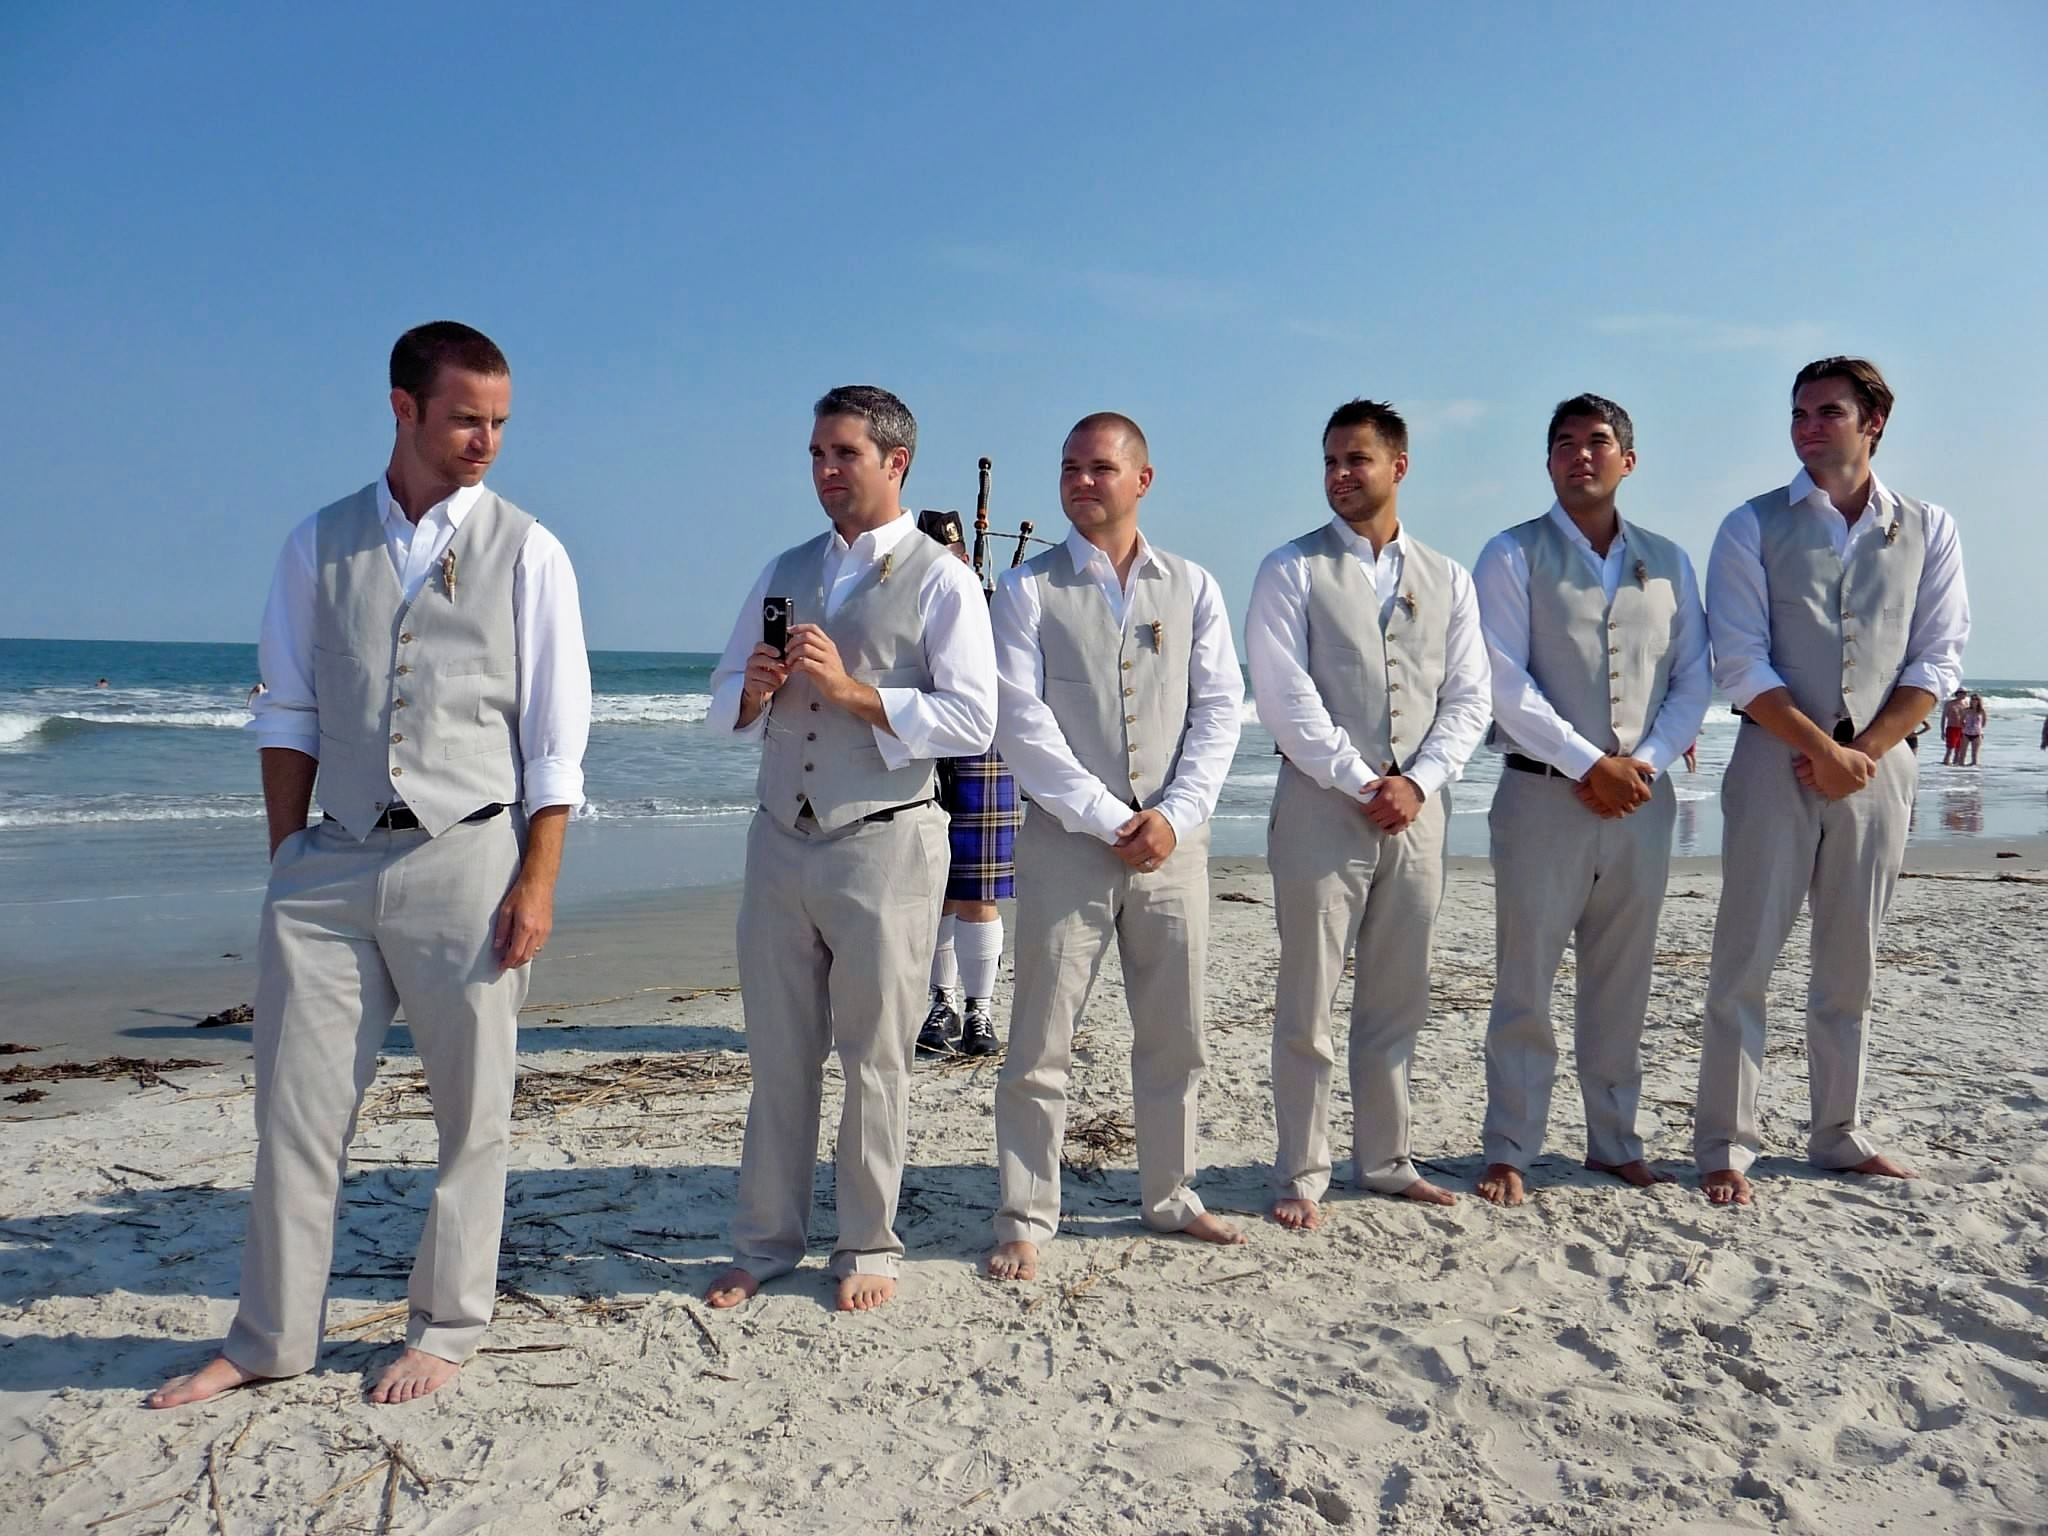 Awesome Destination Wedding Groomsmen Attire Ideas - Styles & Ideas ...